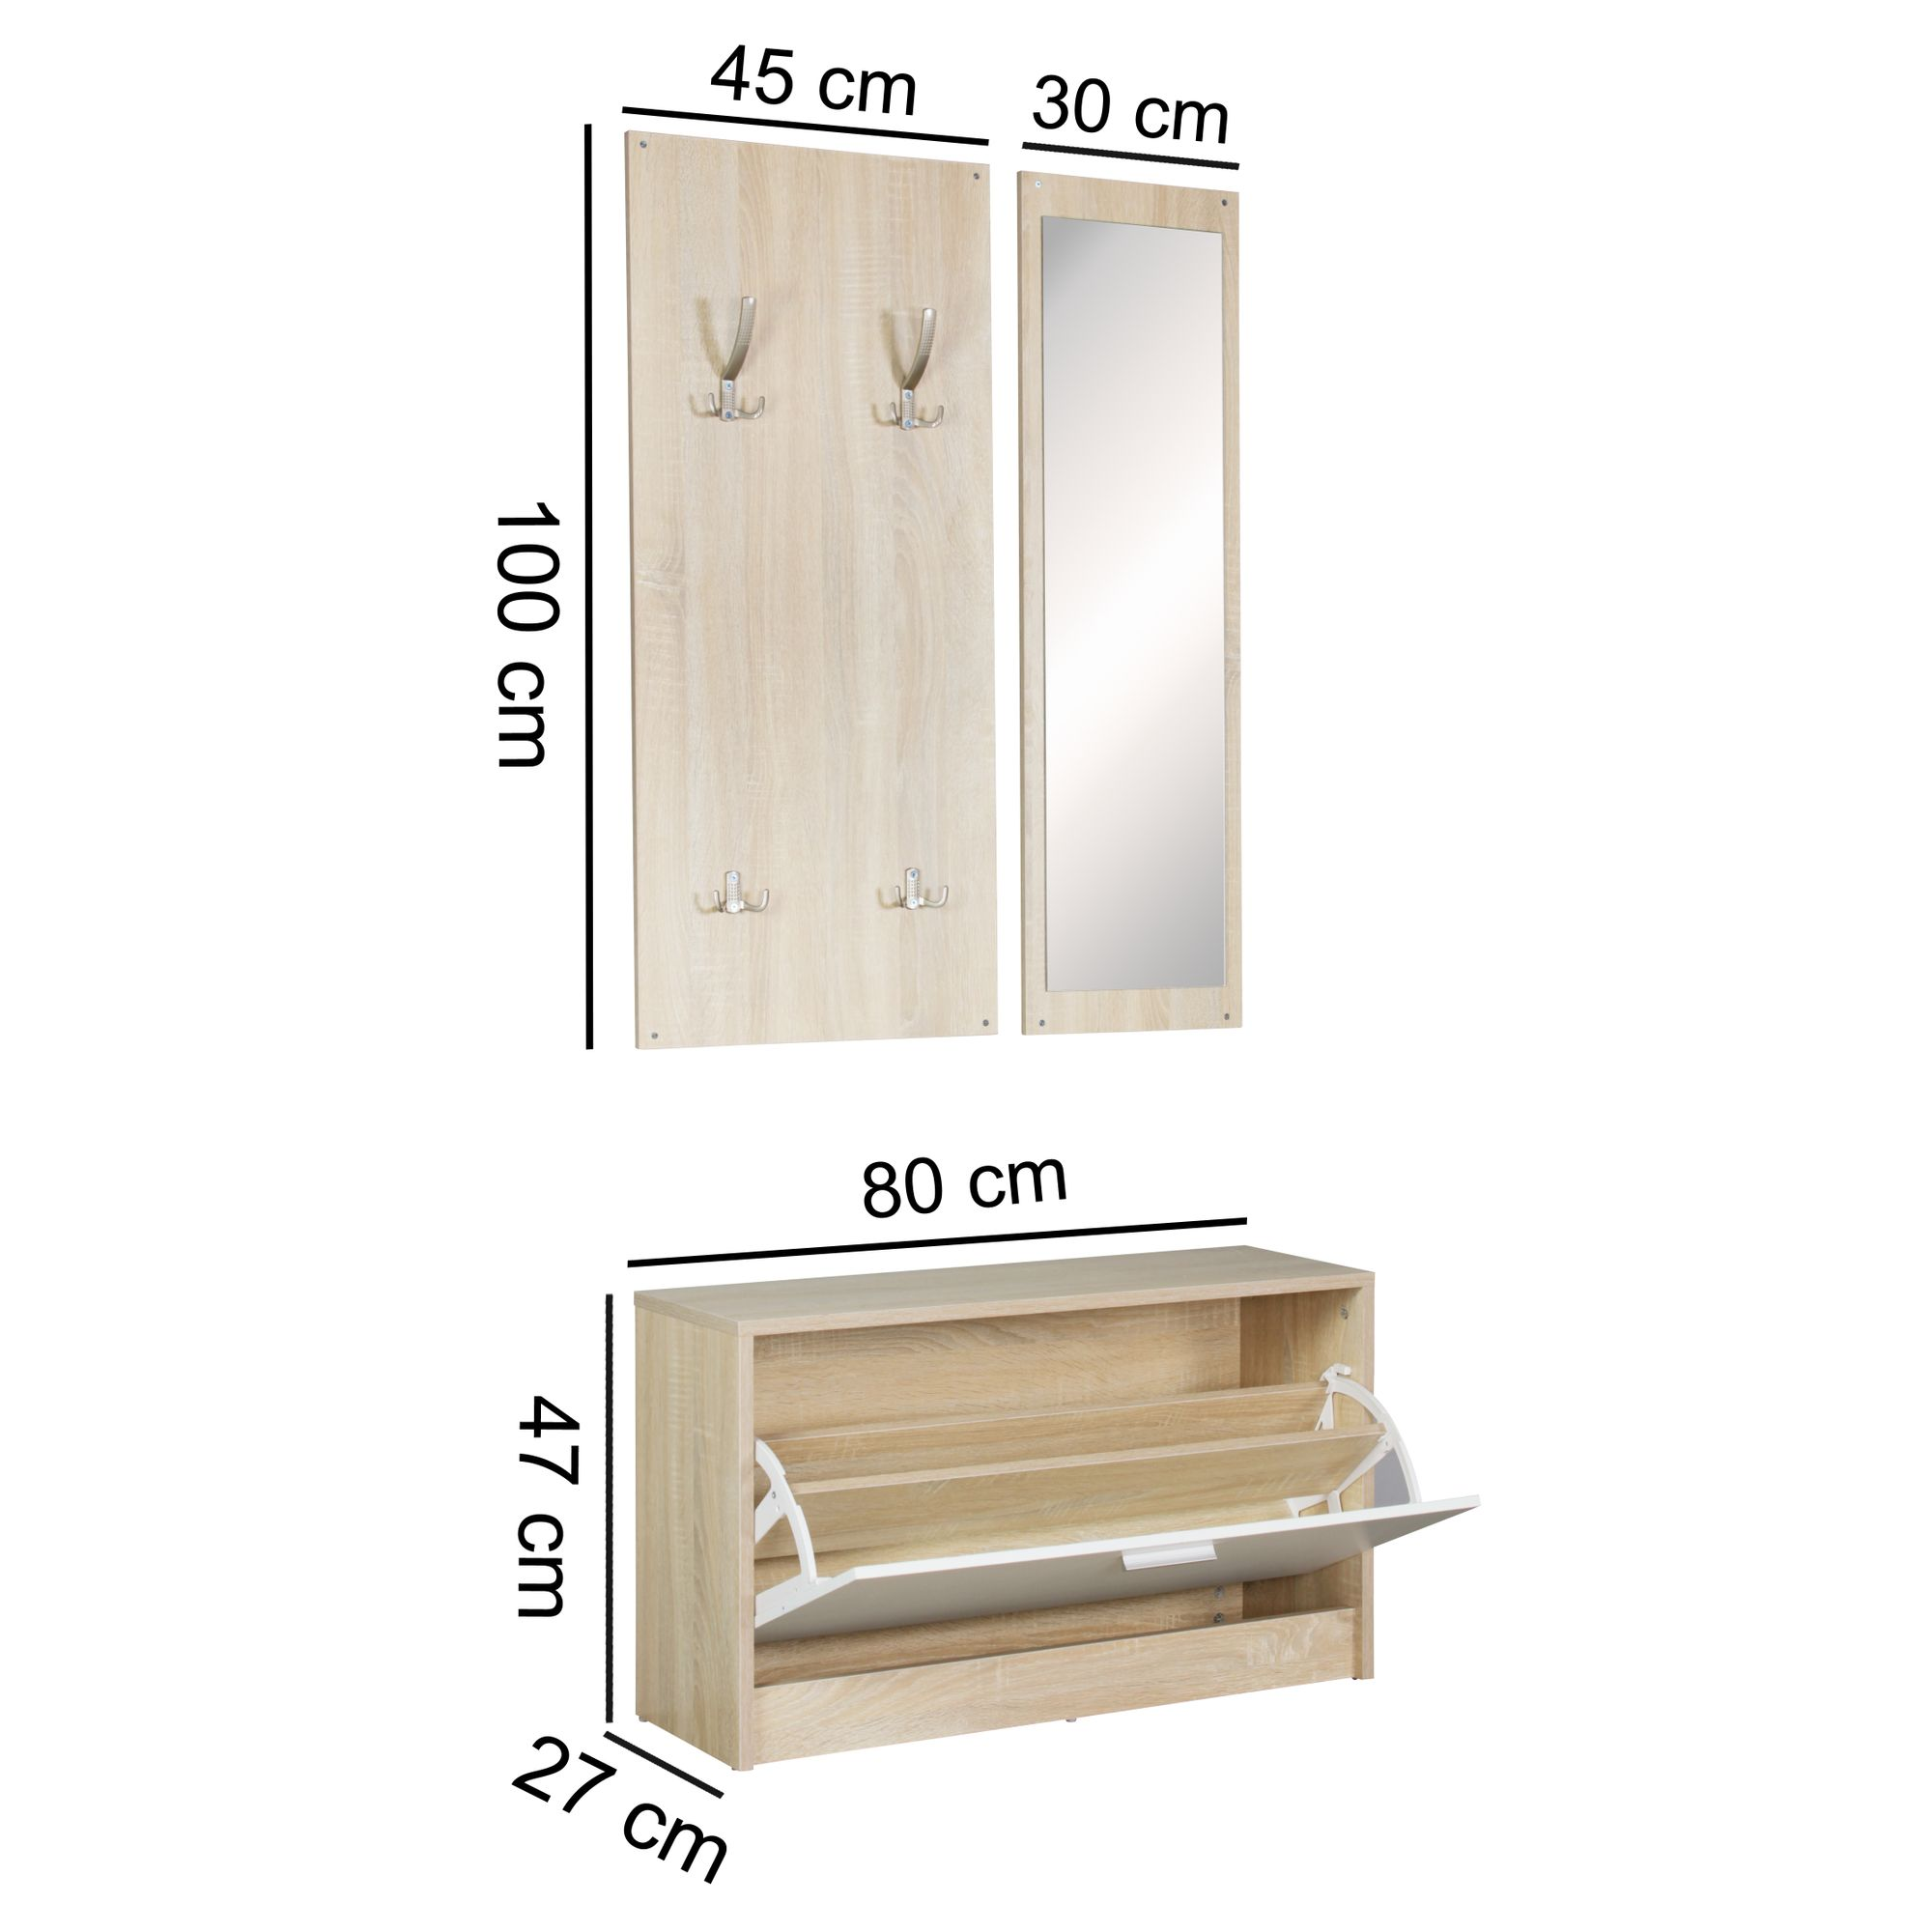 garderobe flurgarderobe paneel wandgarderobe spiegel komplett set kompakt sonoma ebay. Black Bedroom Furniture Sets. Home Design Ideas